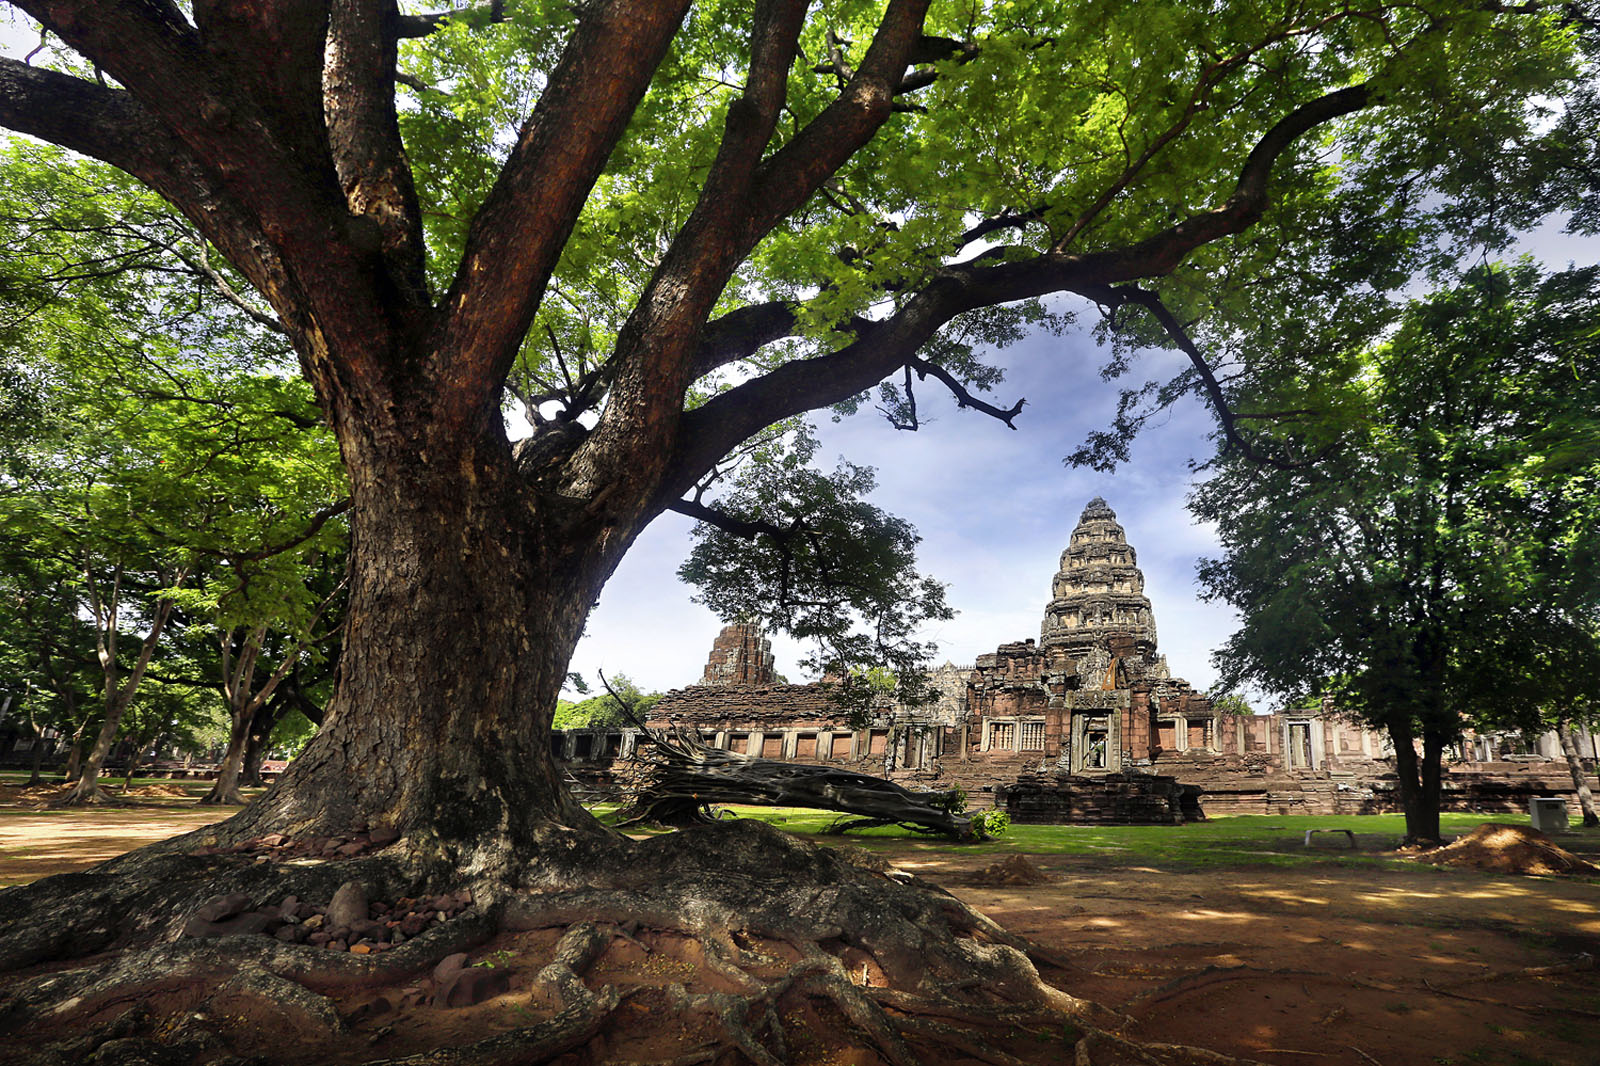 Phimai: Thailand's Most Beautiful Piece of Angkor Wat